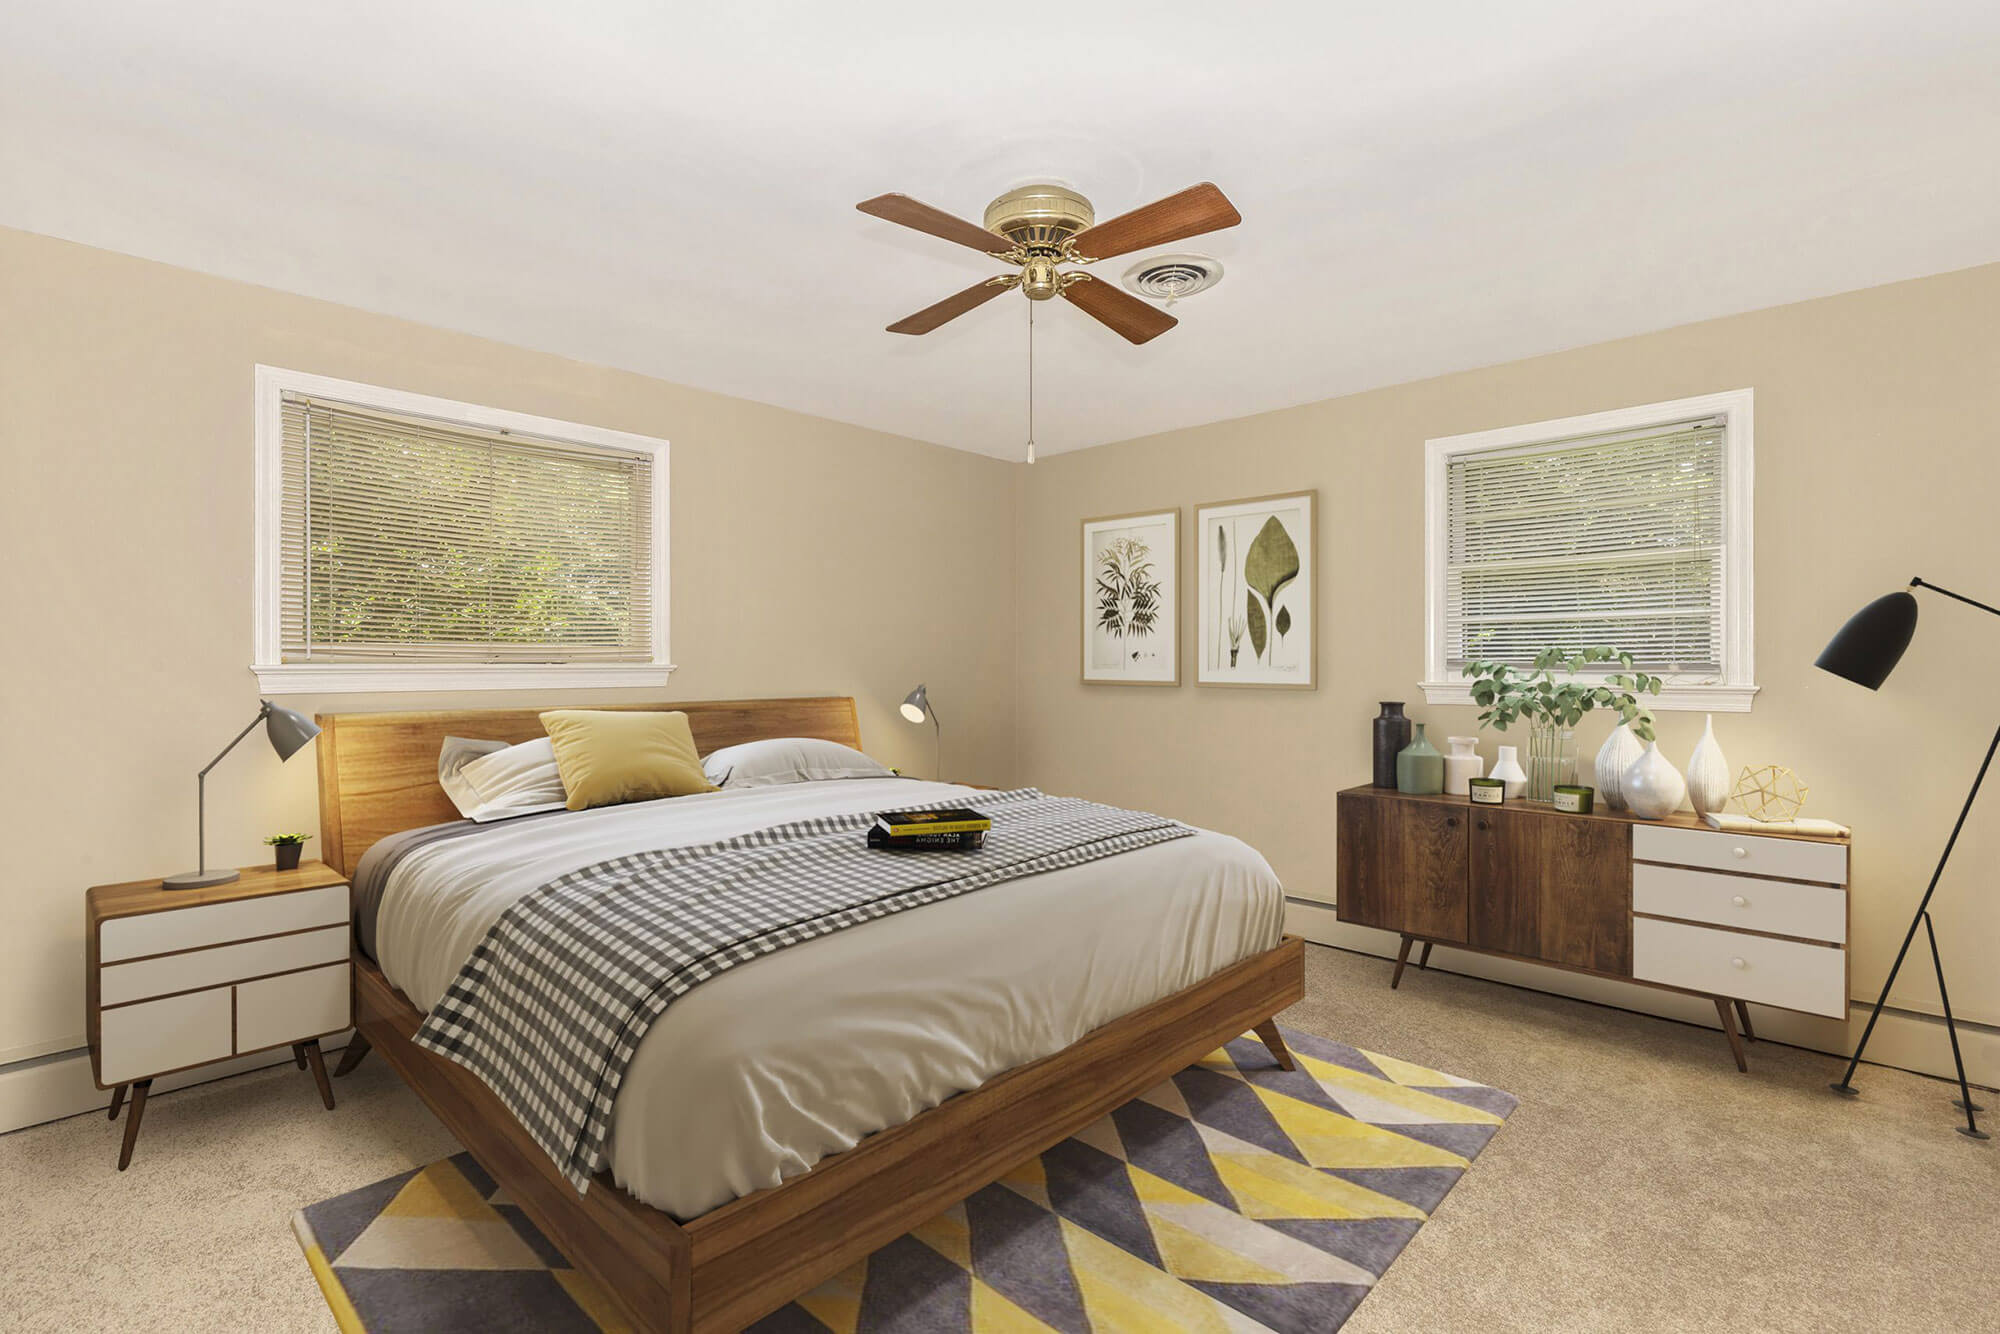 staged bedroom with yellow and beige tones